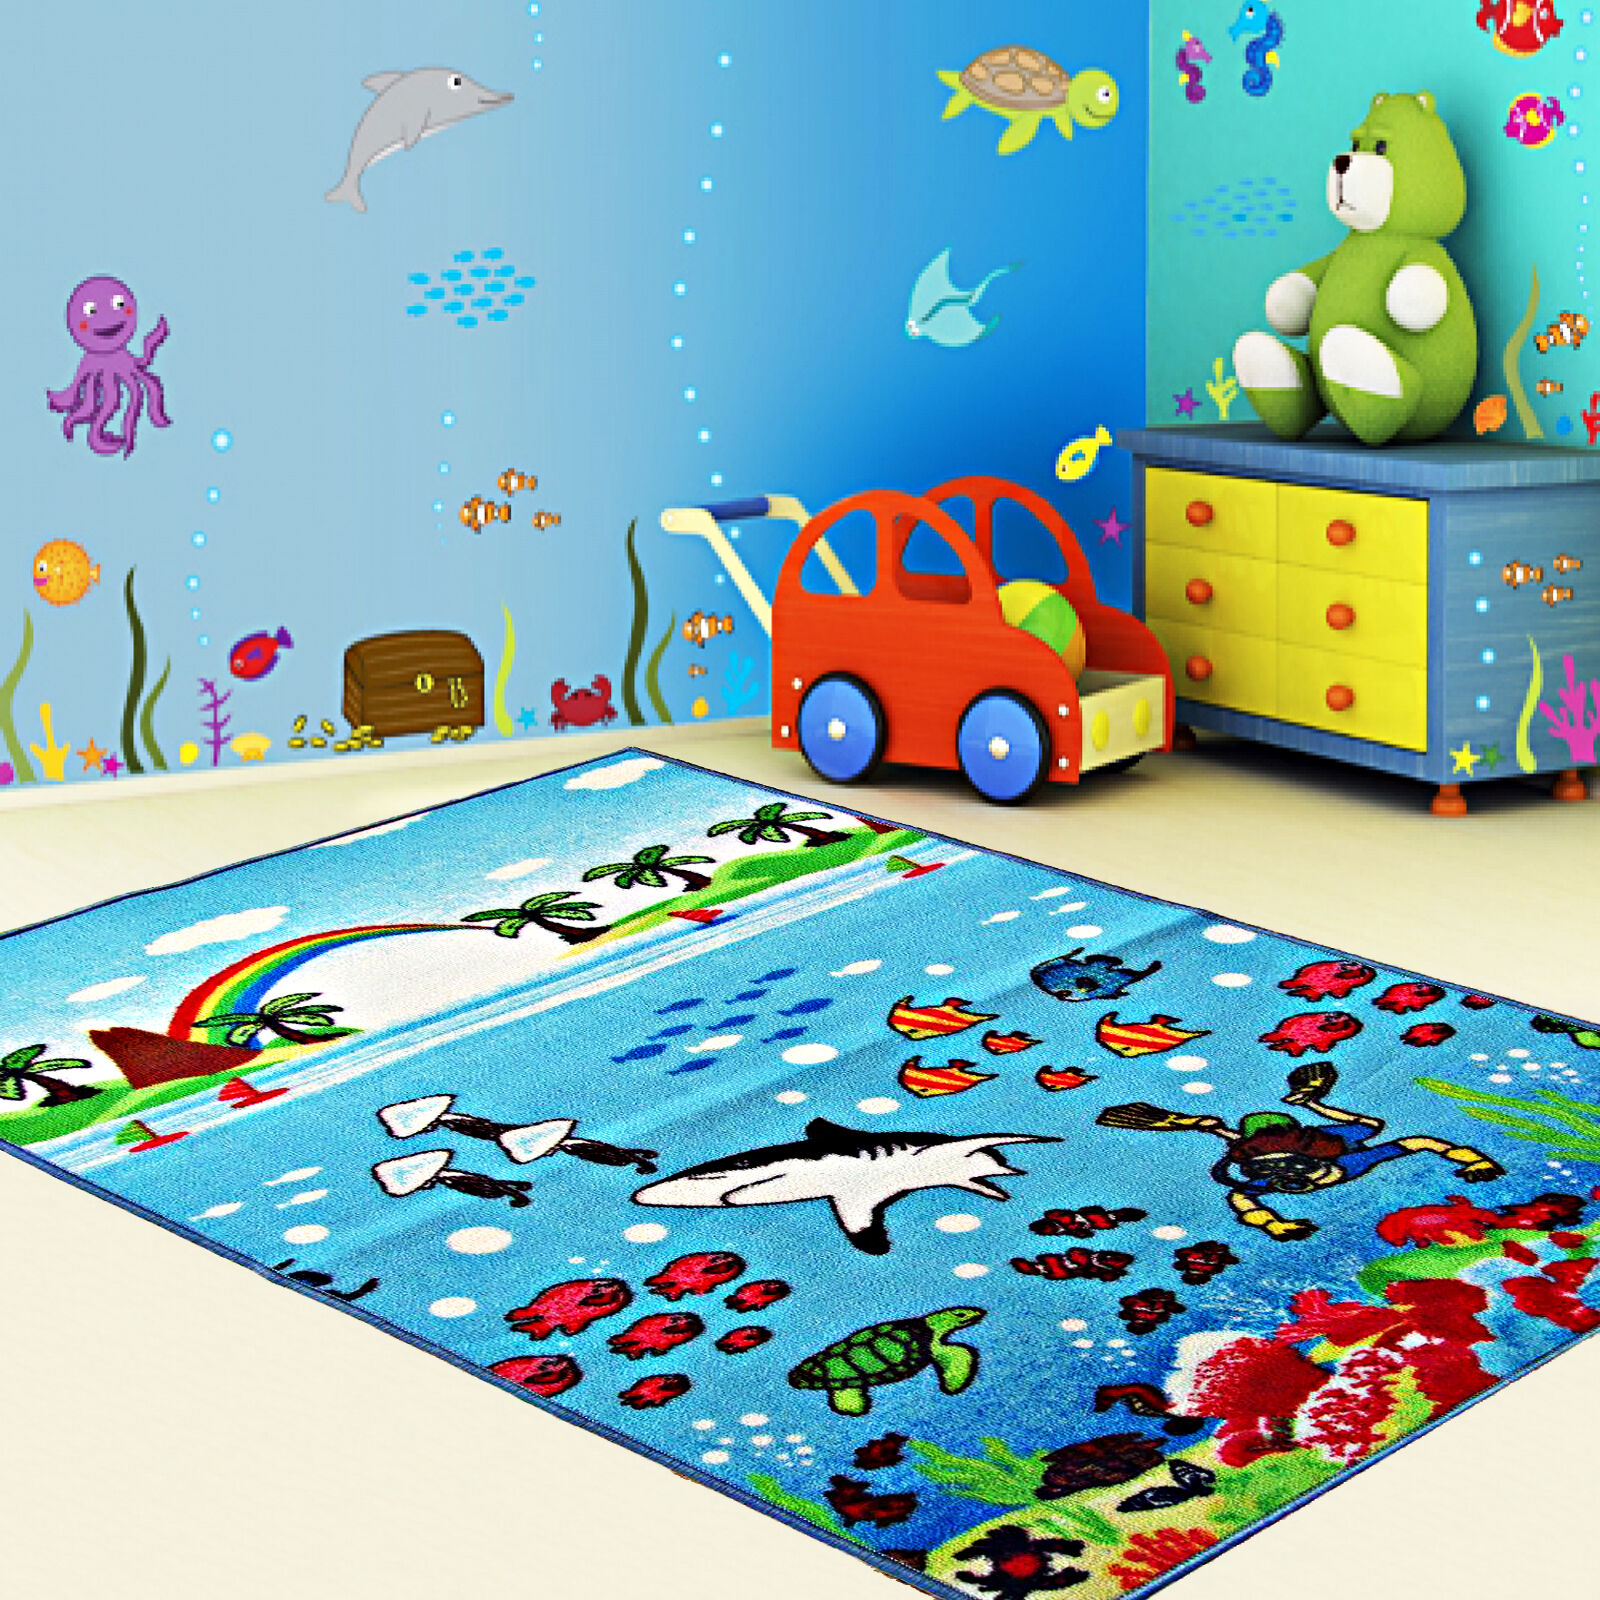 blue girl girls rugs bedroom sanskrit dark white in for the wallpaper patterned under hardwood on decoration toned also and synonyms floor shelves with ideas window